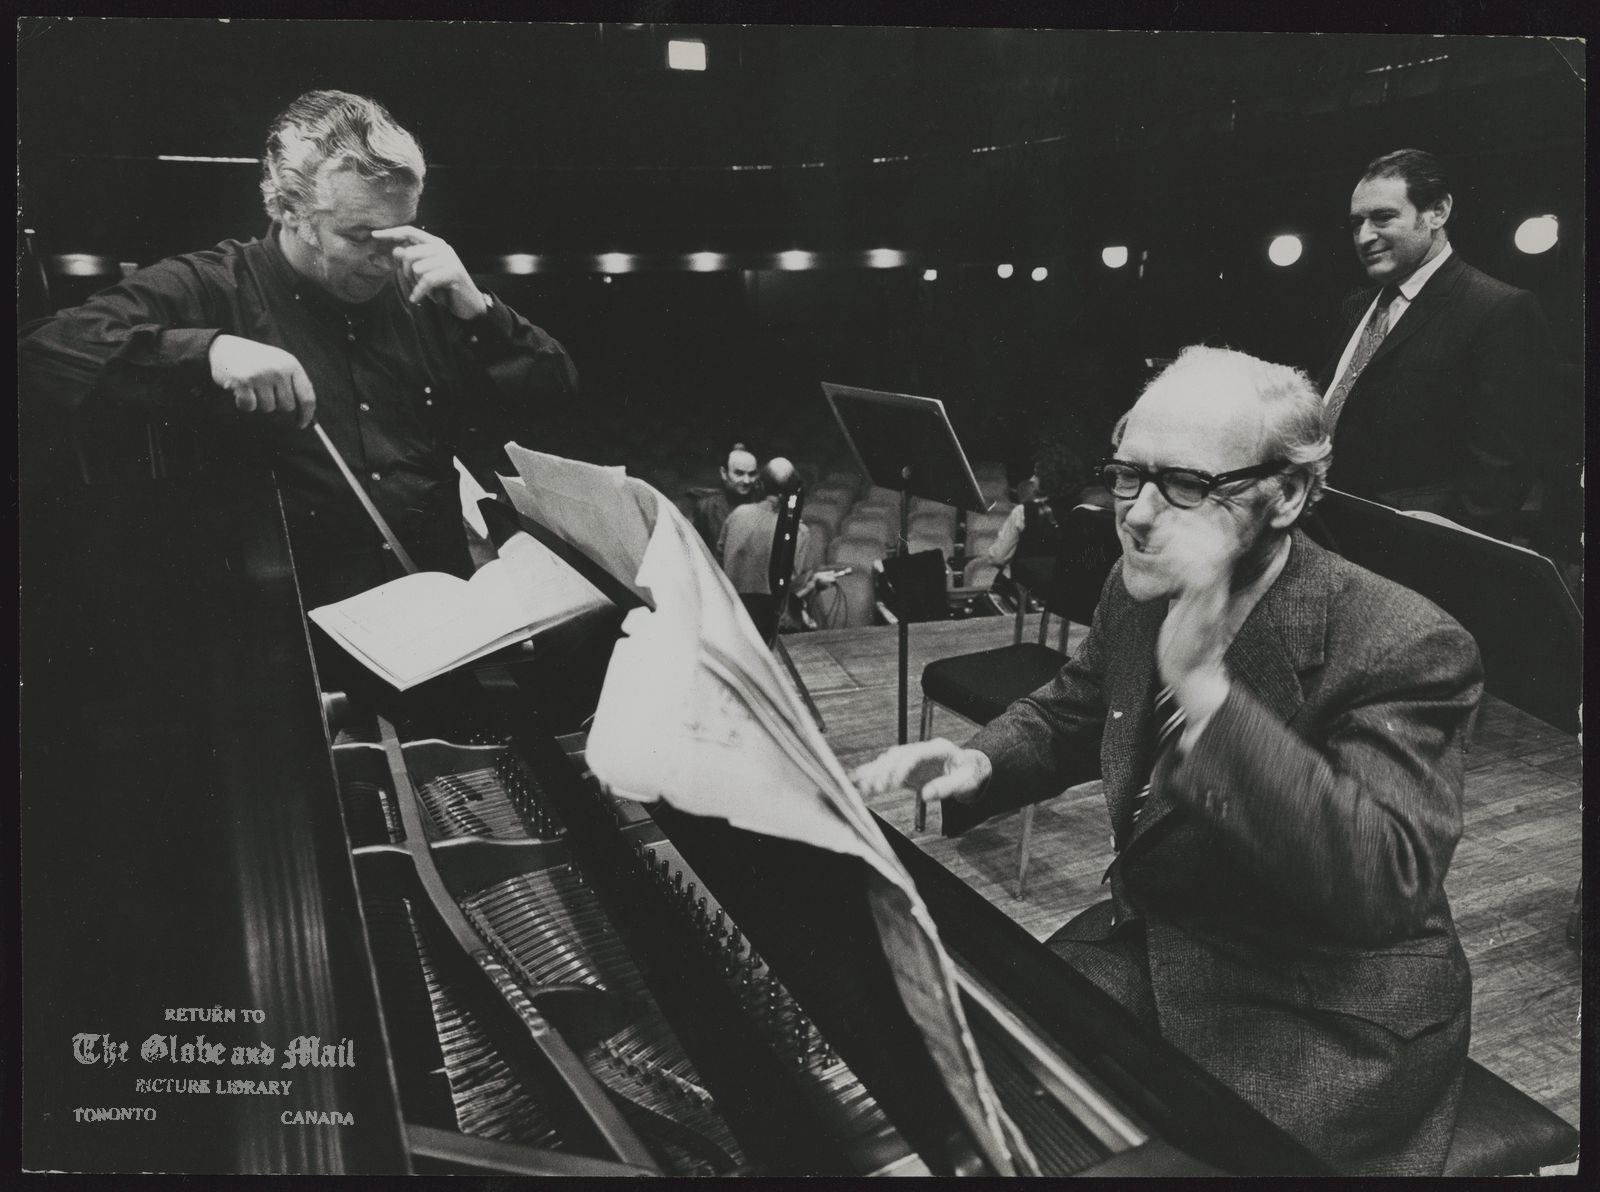 Mitchell SHARP Toronto. Politician Conductor Victor Feldbrill ponders his fate as he rehearses an exuberant Mitchell Sharp for the External Affairs Minister's world concert debut at Massey Hall last night. Mr. Sharp selected Mozart's Piano Concerto - No. 21 (andante). Also making his, concert debut was Donald S. Macdonald, Minister of Energy, Mines and Resources, who conducted the Toronto Symphony Orchestra in a rendition of the Colonel Bogey march. The guests were taking part in a Christmas concert.